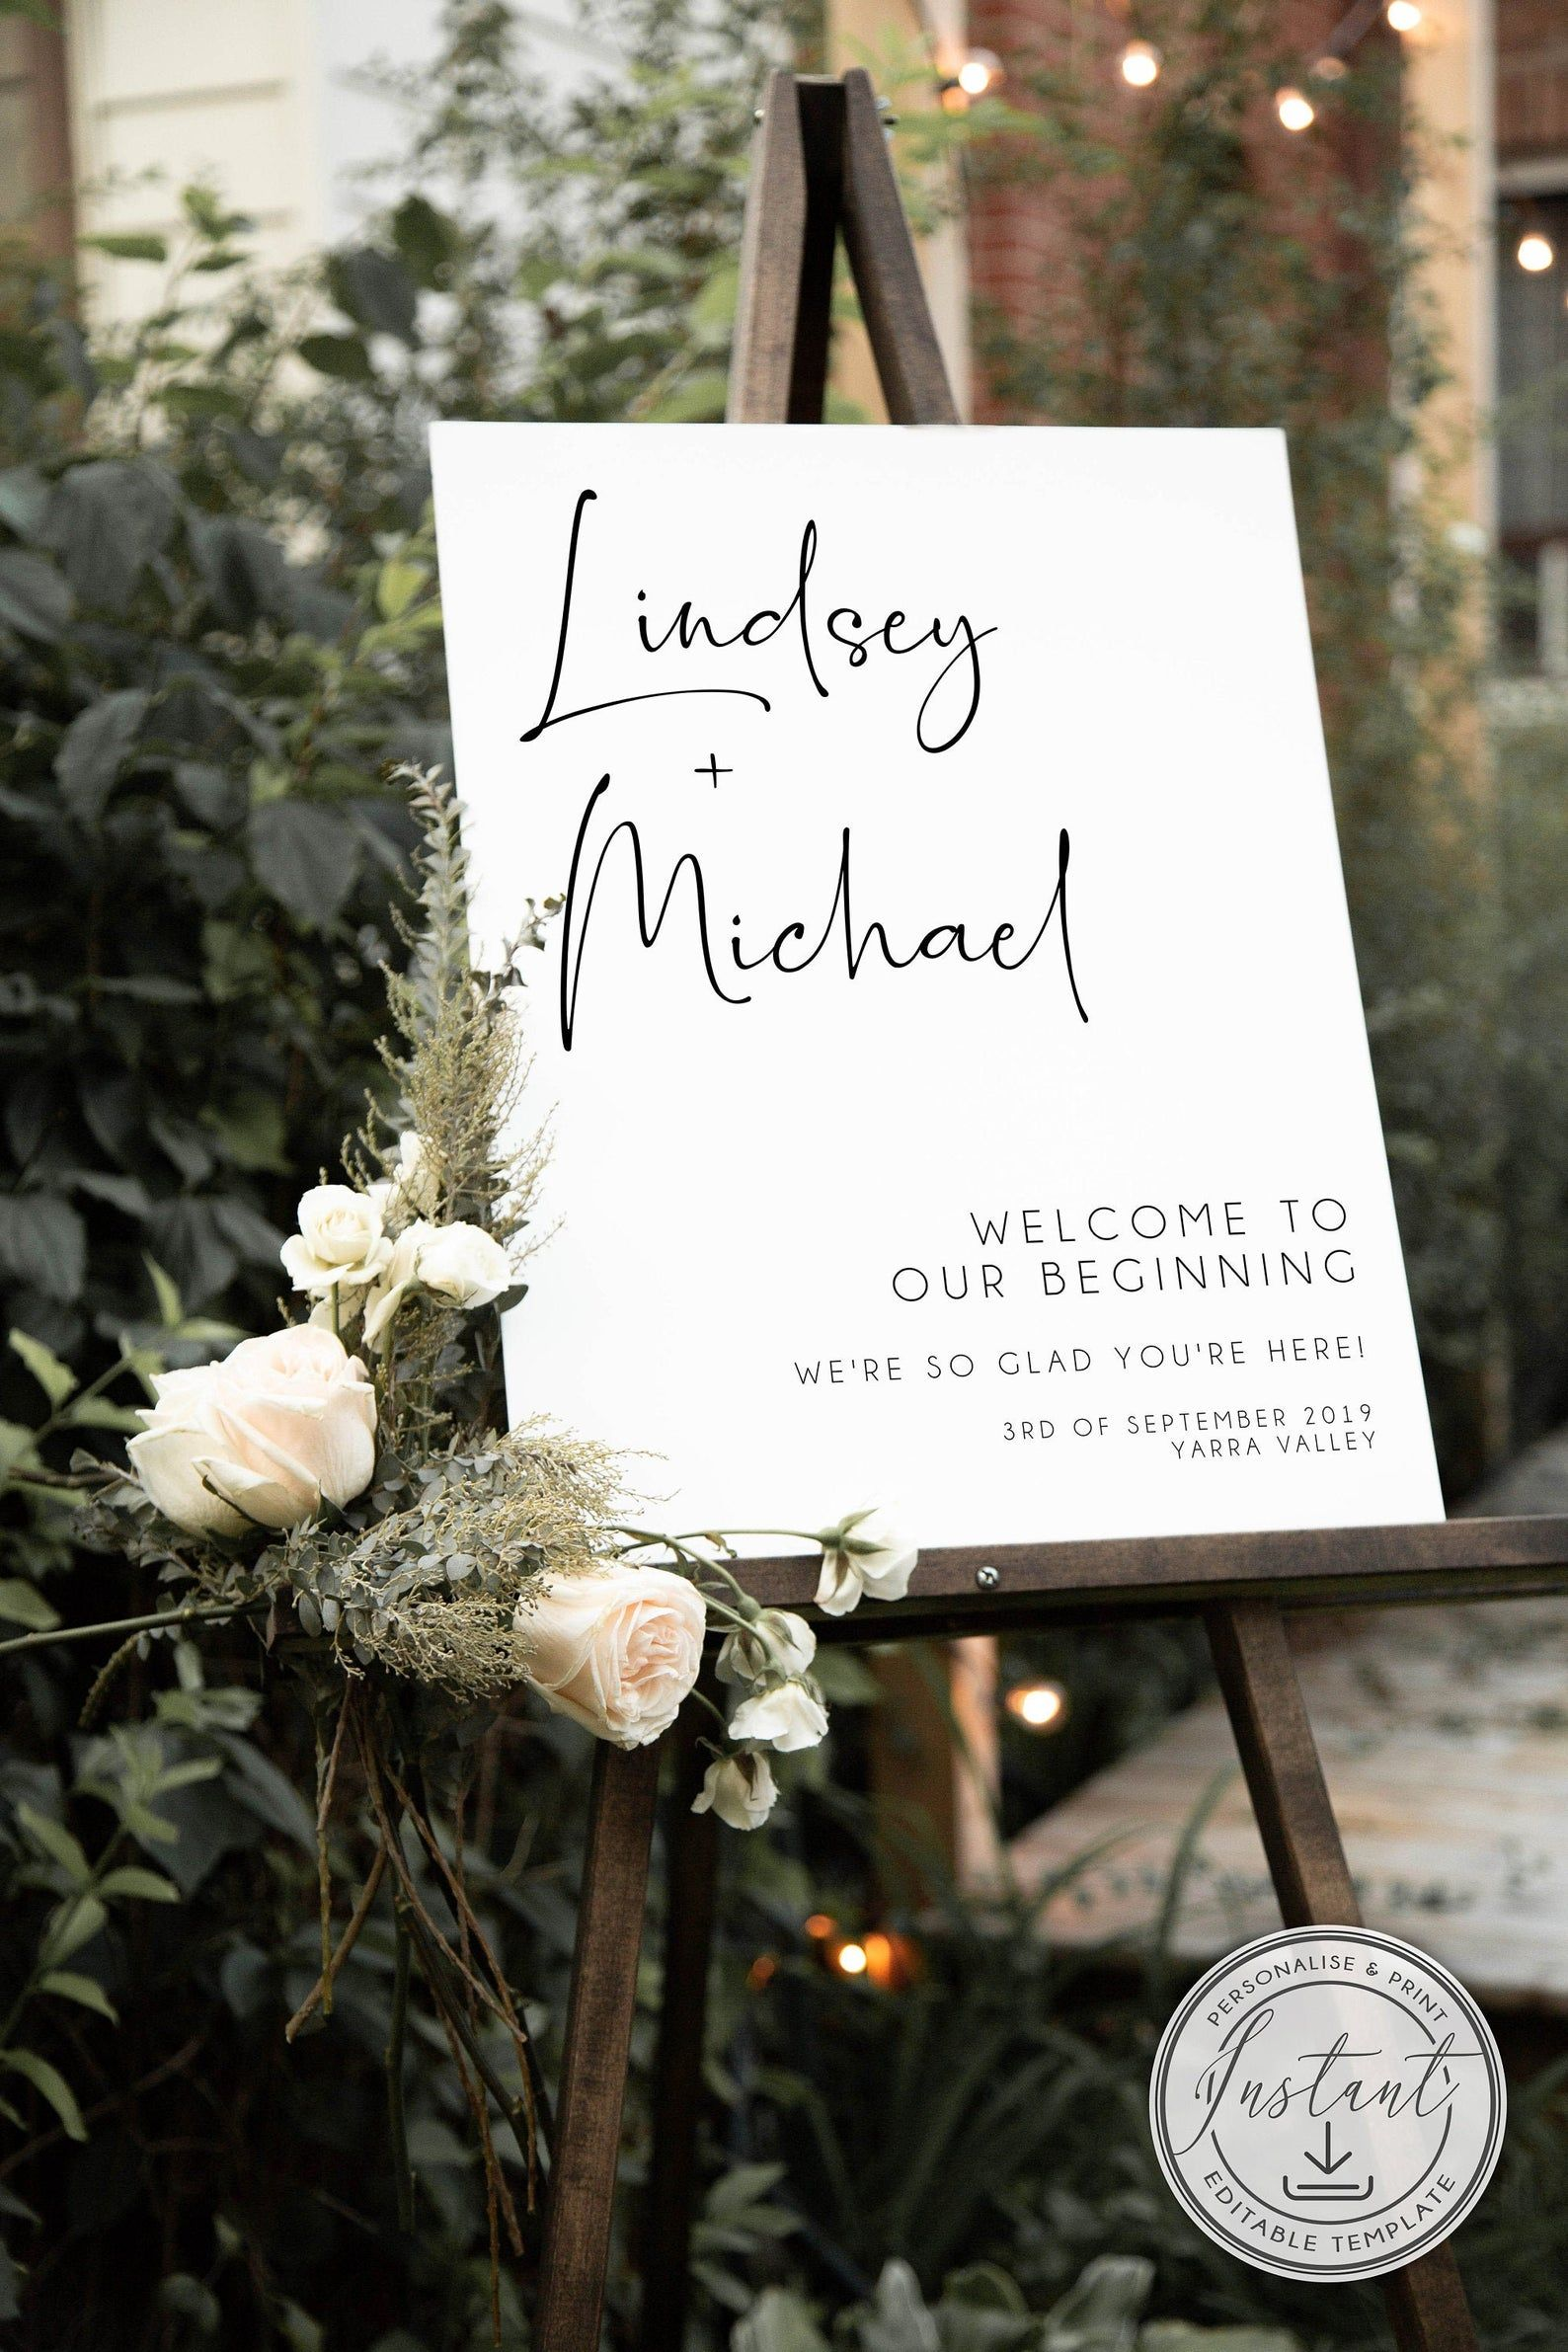 Minimalist Wedding Welcome Sign Template Custom Welcome Sign Etsy In 2021 Wedding Welcome Signs Wedding Welcome Minimalist Wedding